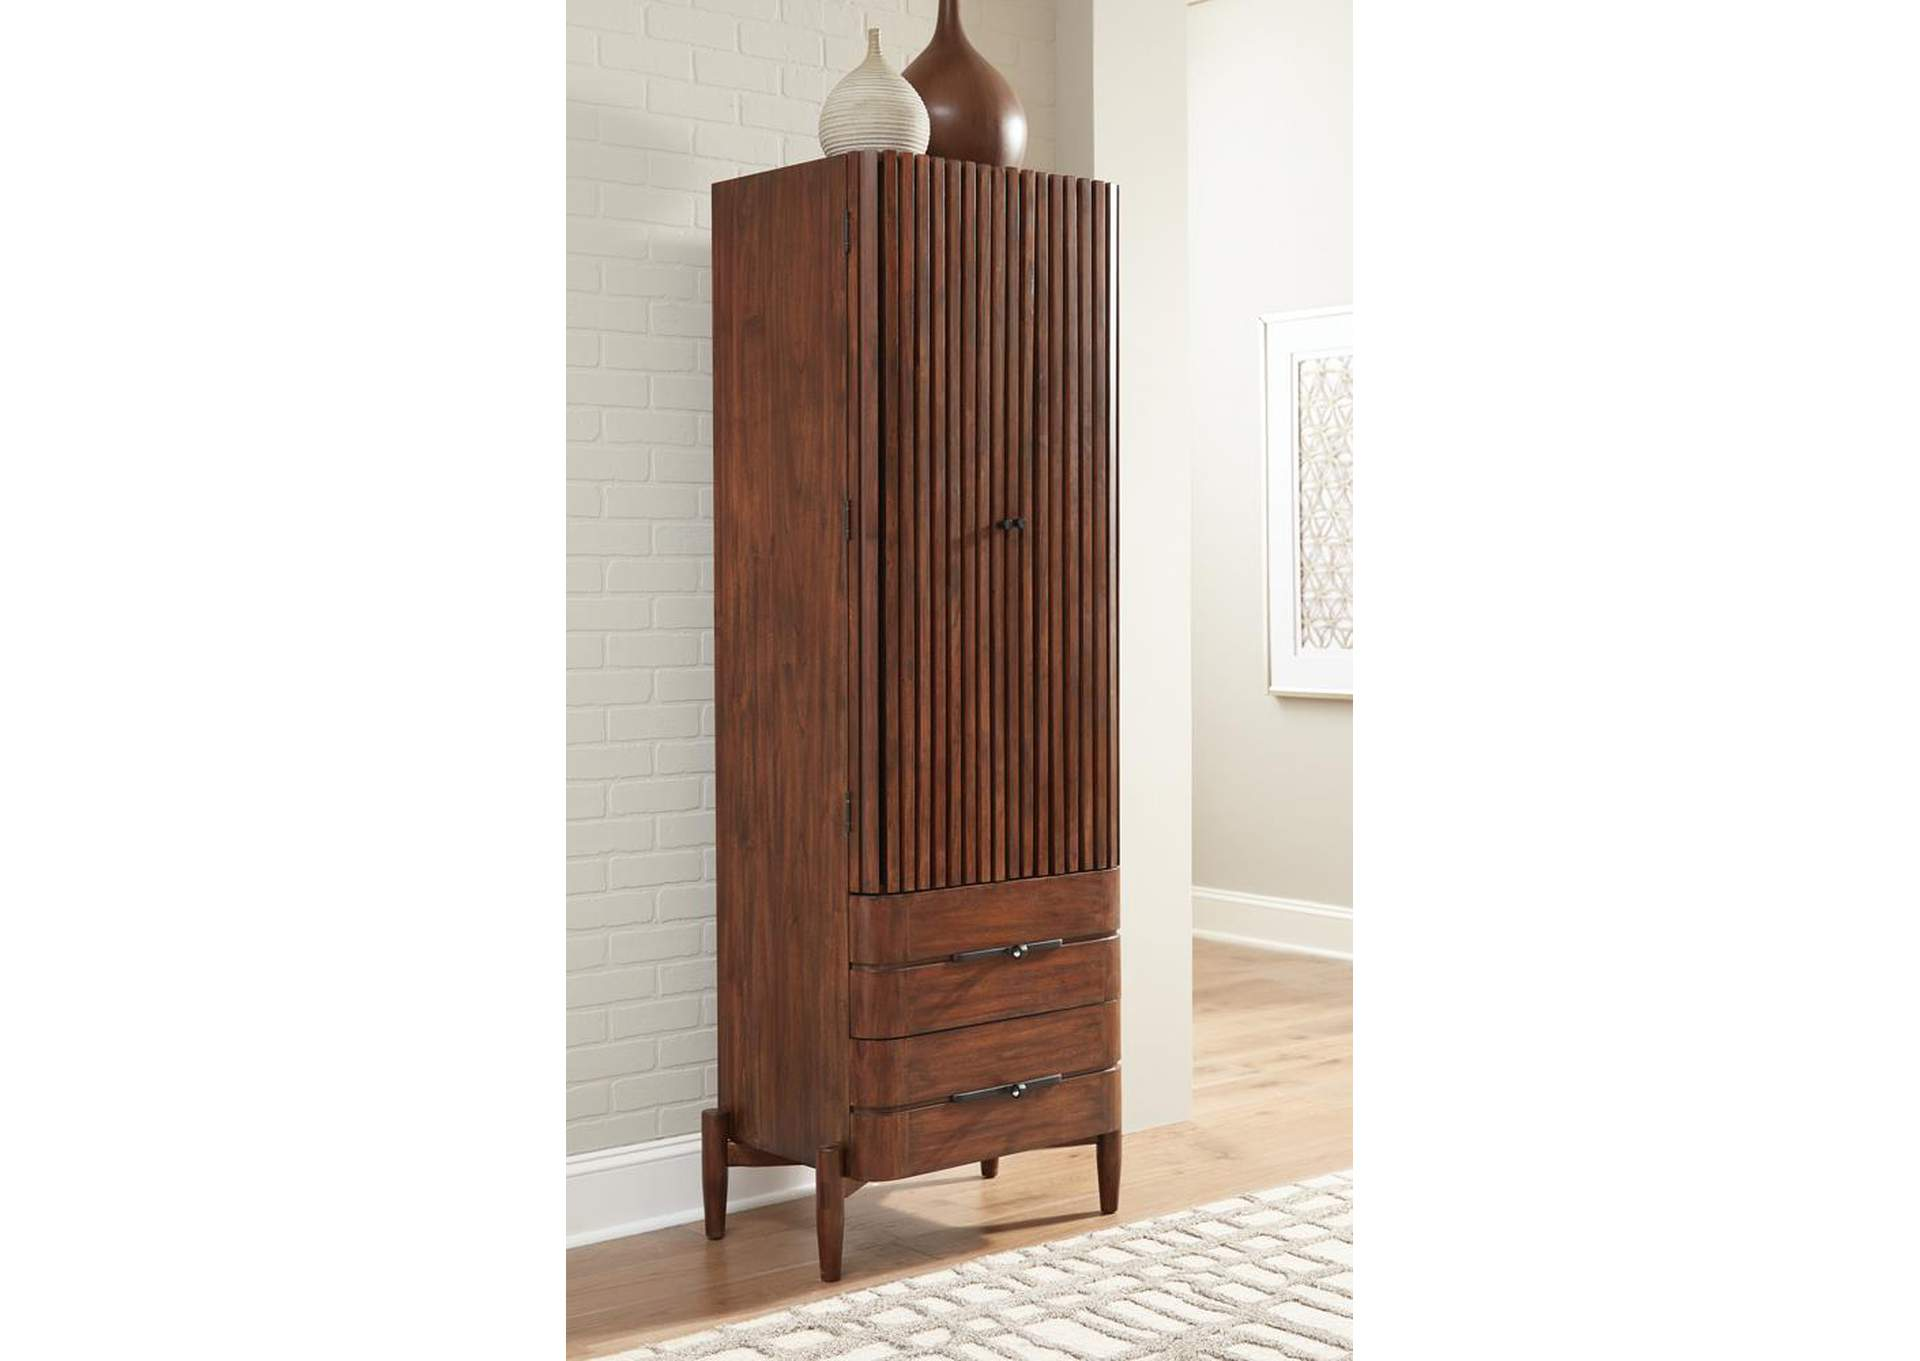 San Mateo Desert Teak 2-Drawer Shoe Cabinet,Coaster Furniture